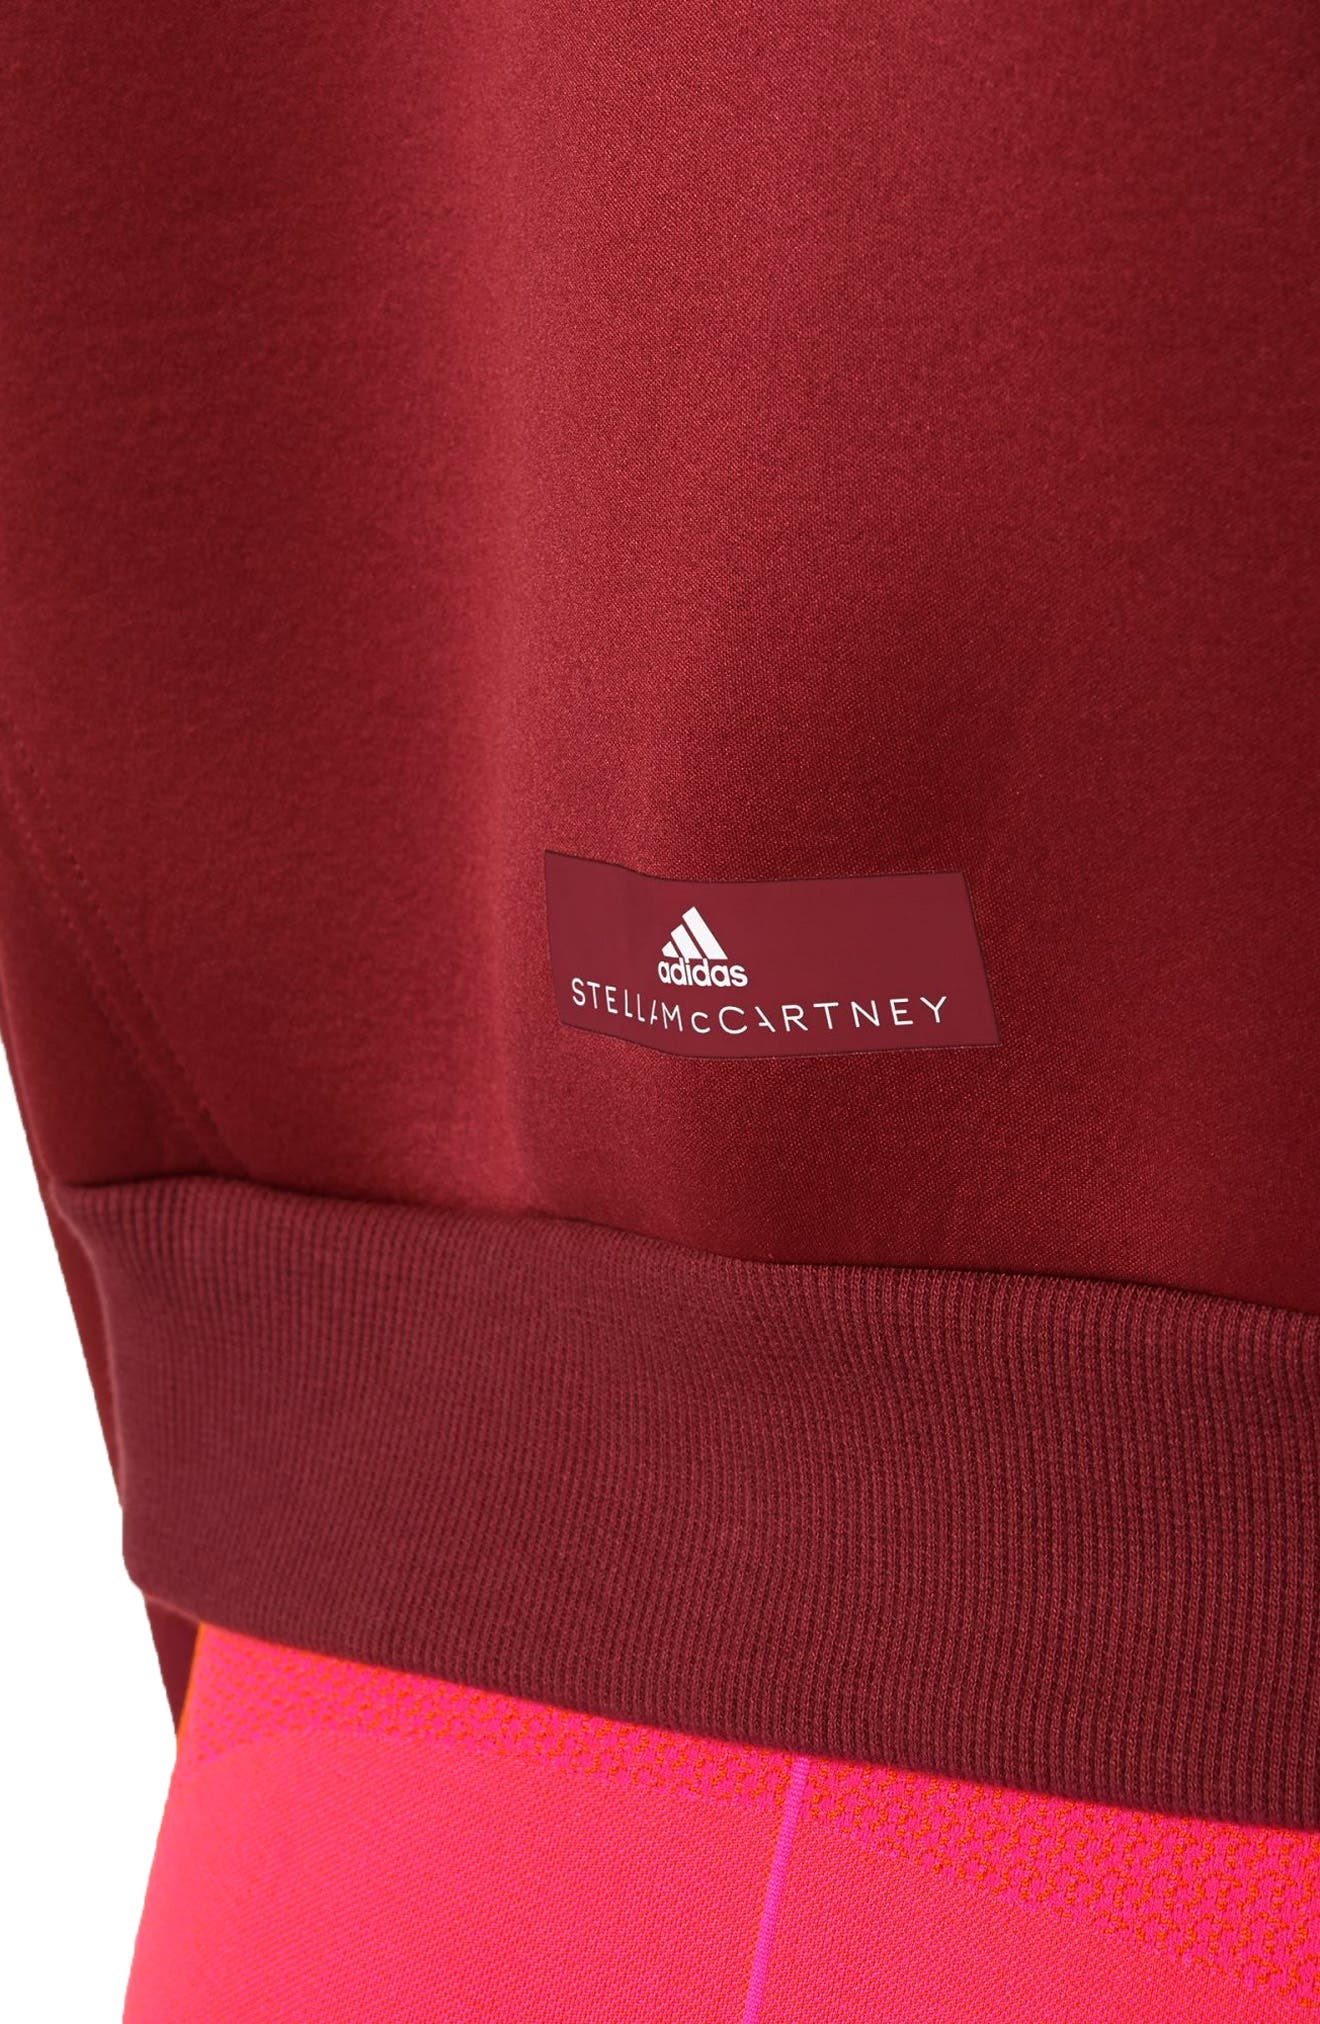 Yoga Turtleneck Sweatshirt,                             Alternate thumbnail 4, color,                             599